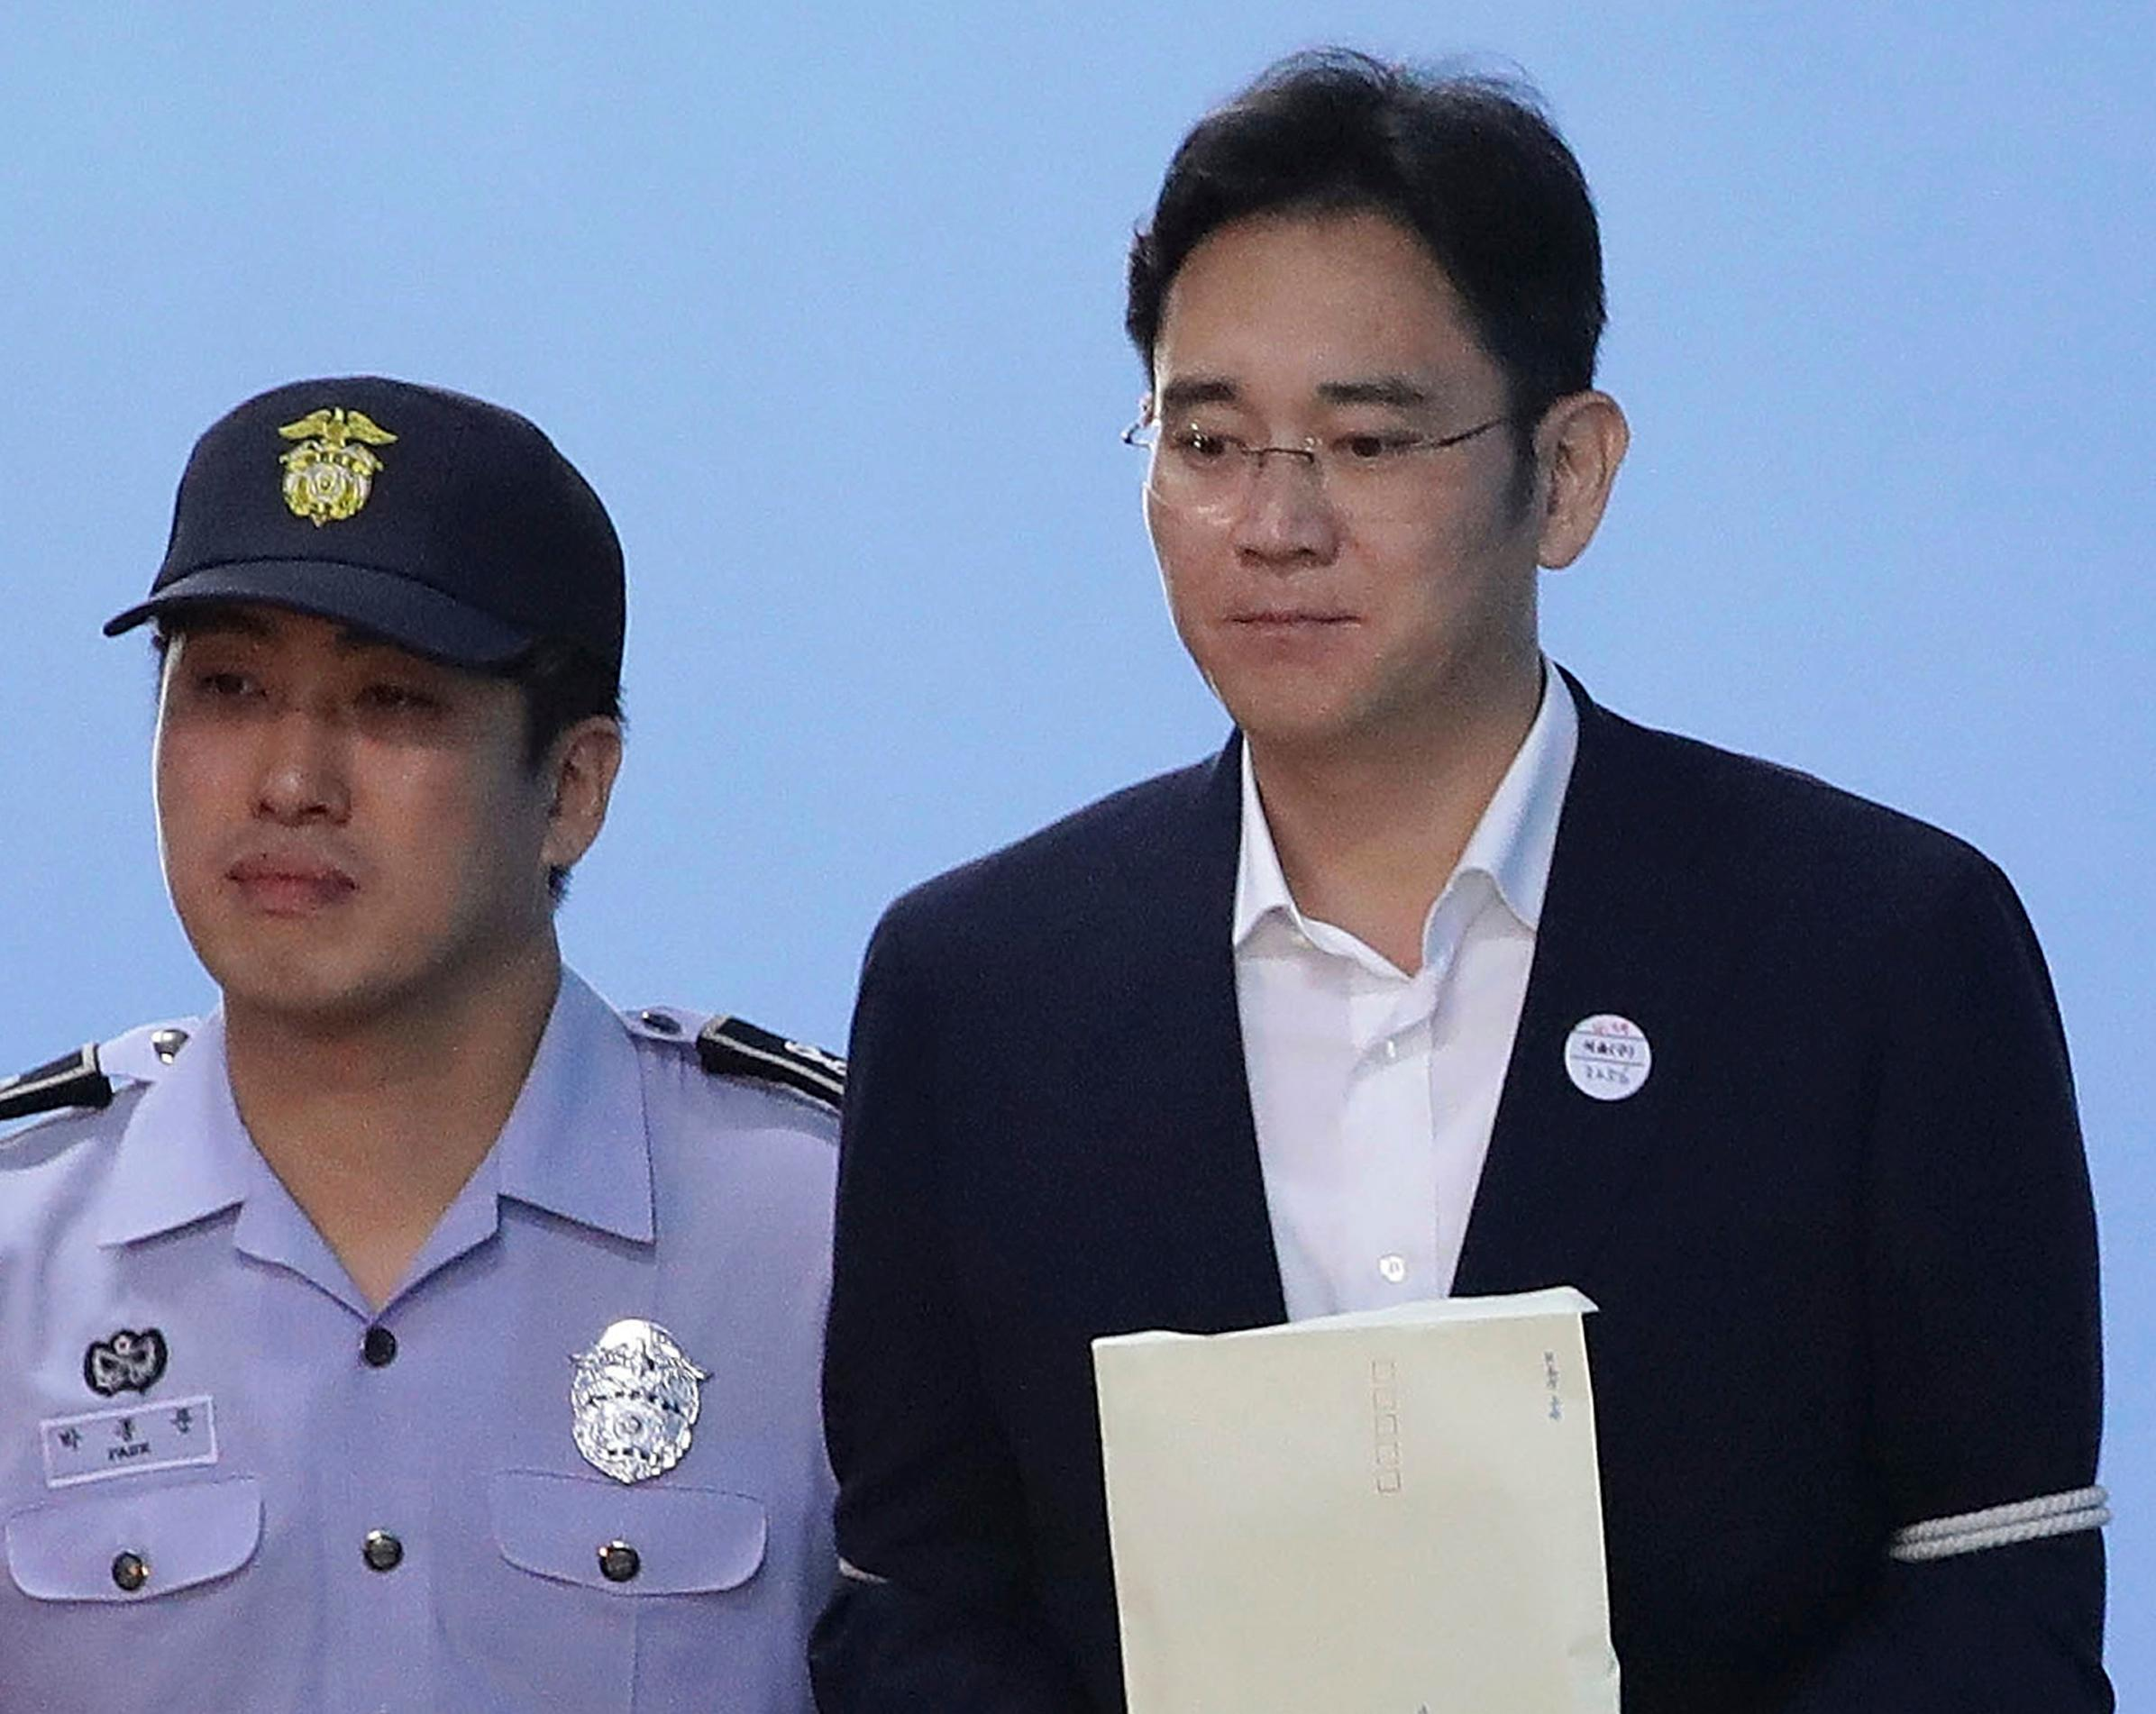 Samsung Electronics Co. Vice Chairman Lee Jae-yong, right, leaves after his verdict trial at the Seoul Central District Court Friday, Aug. 25, 2017 in Seoul, South Korea. The court sentenced the billionaire Samsung heir to five years in prison for bribery and other crimes that fed public anger leading to the ouster of Park Geun-hye as South Korea's president. (Chung Sung-Jun/Pool Photo via AP)